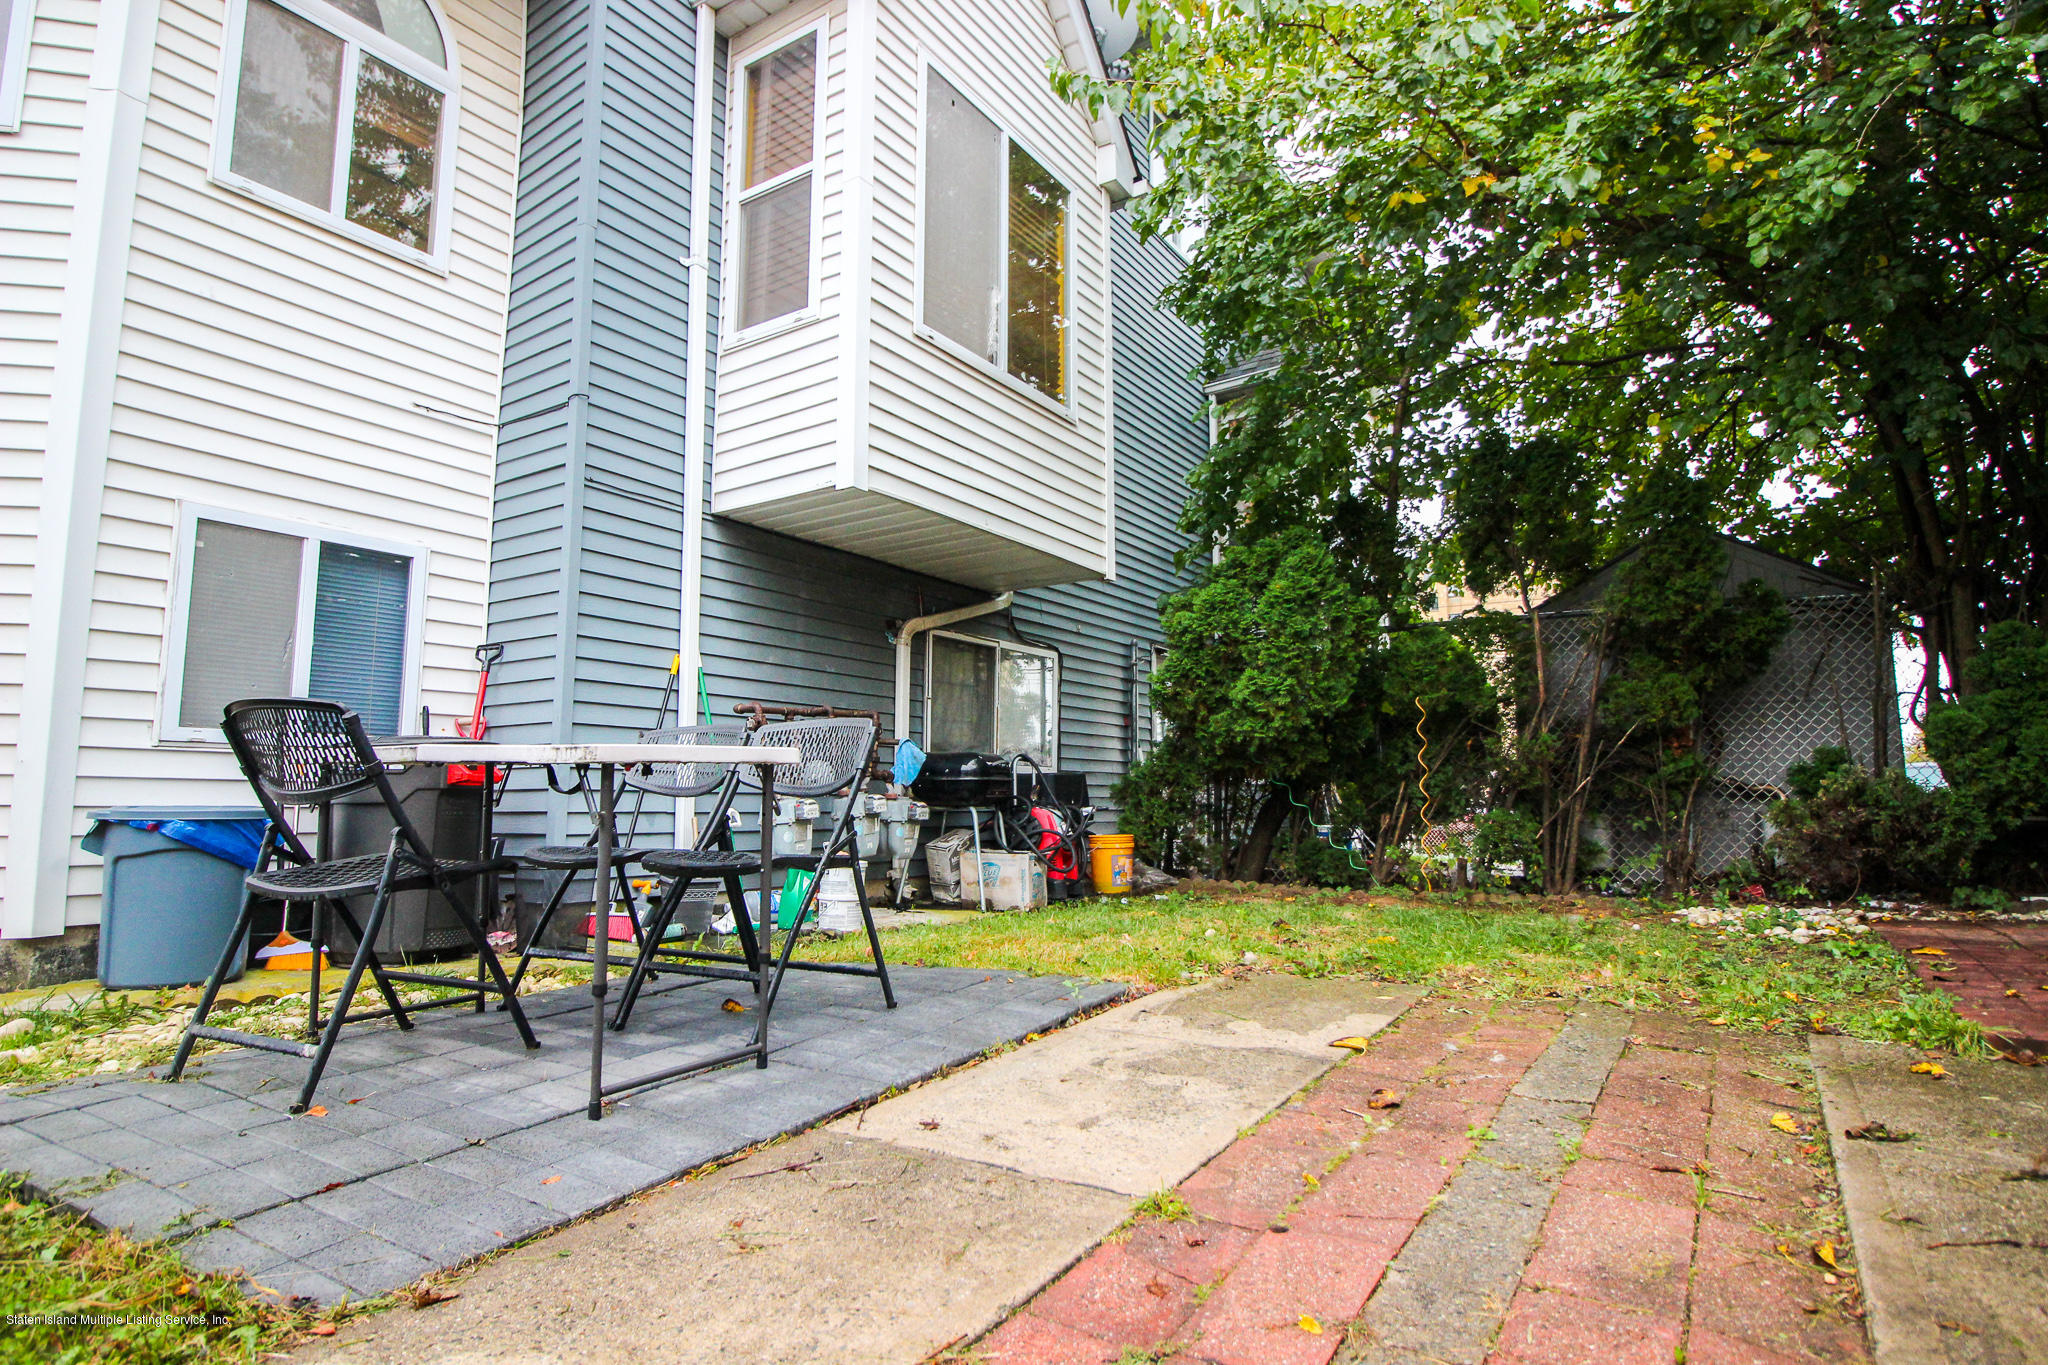 Single Family - Attached 86 Country Drive S Drive  Staten Island, NY 10314, MLS-1141008-39